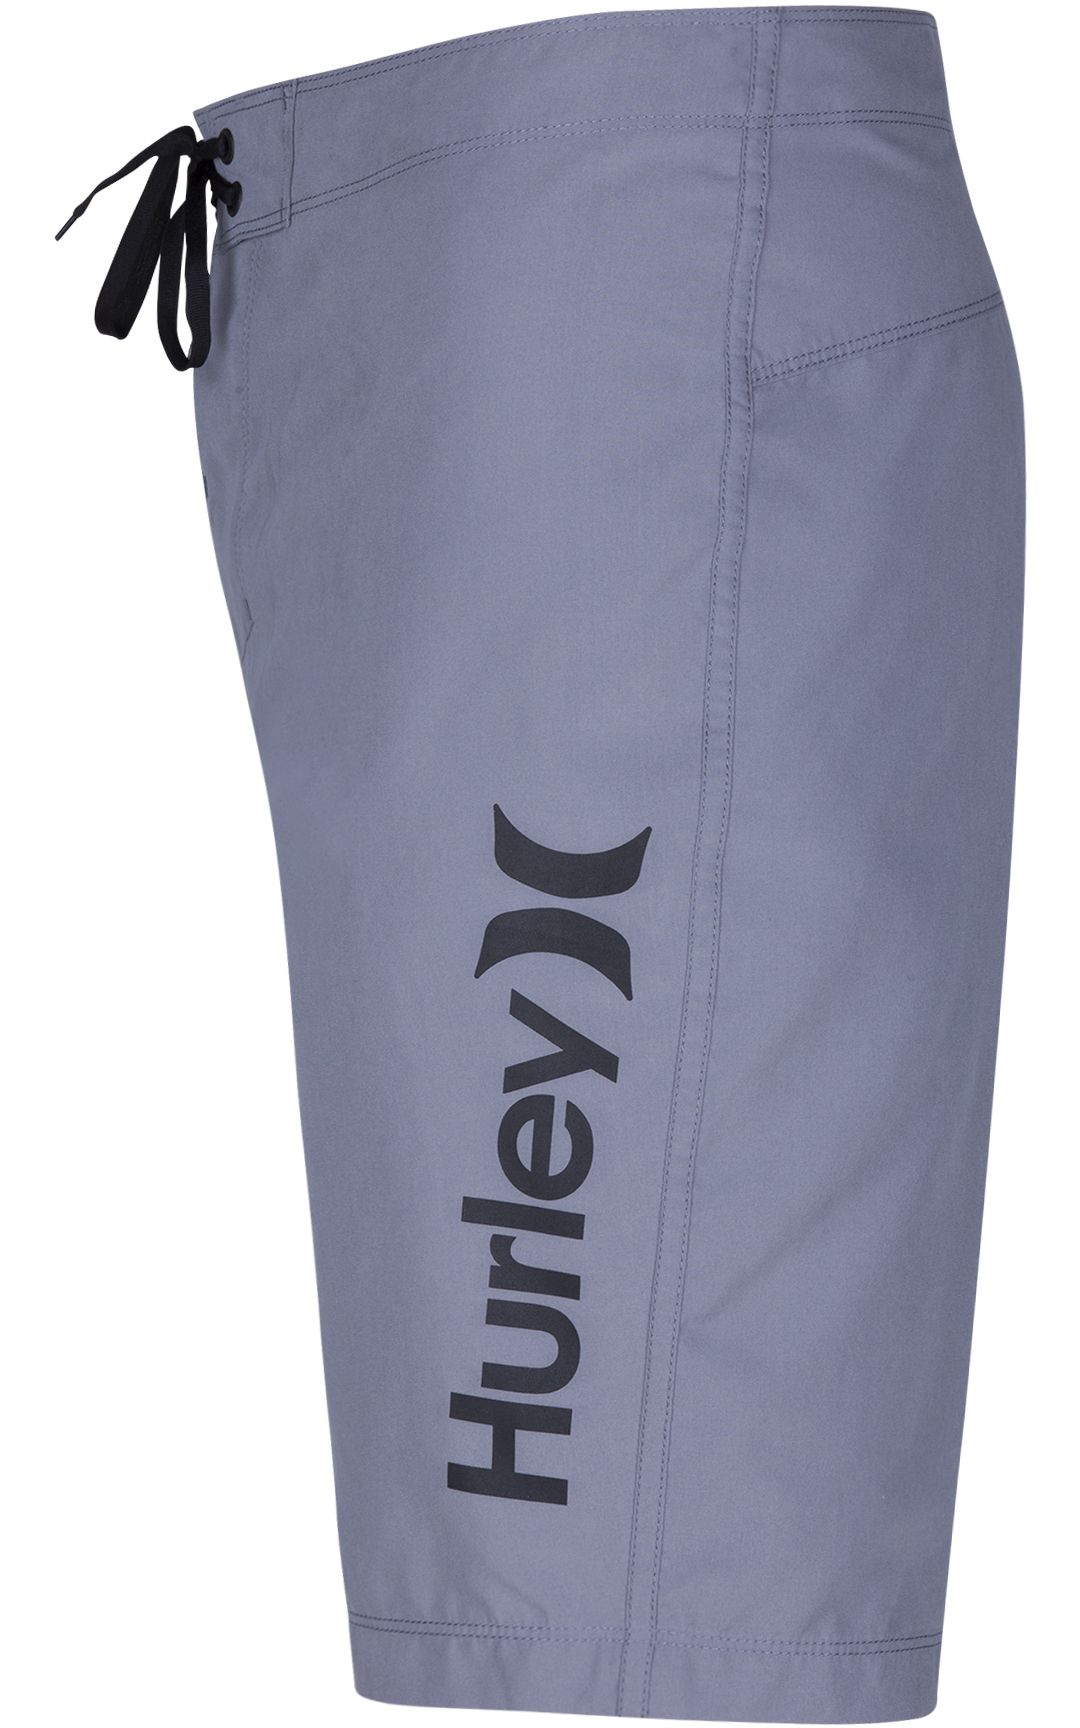 Hurley Men's One & Only 2 0 Board Shorts